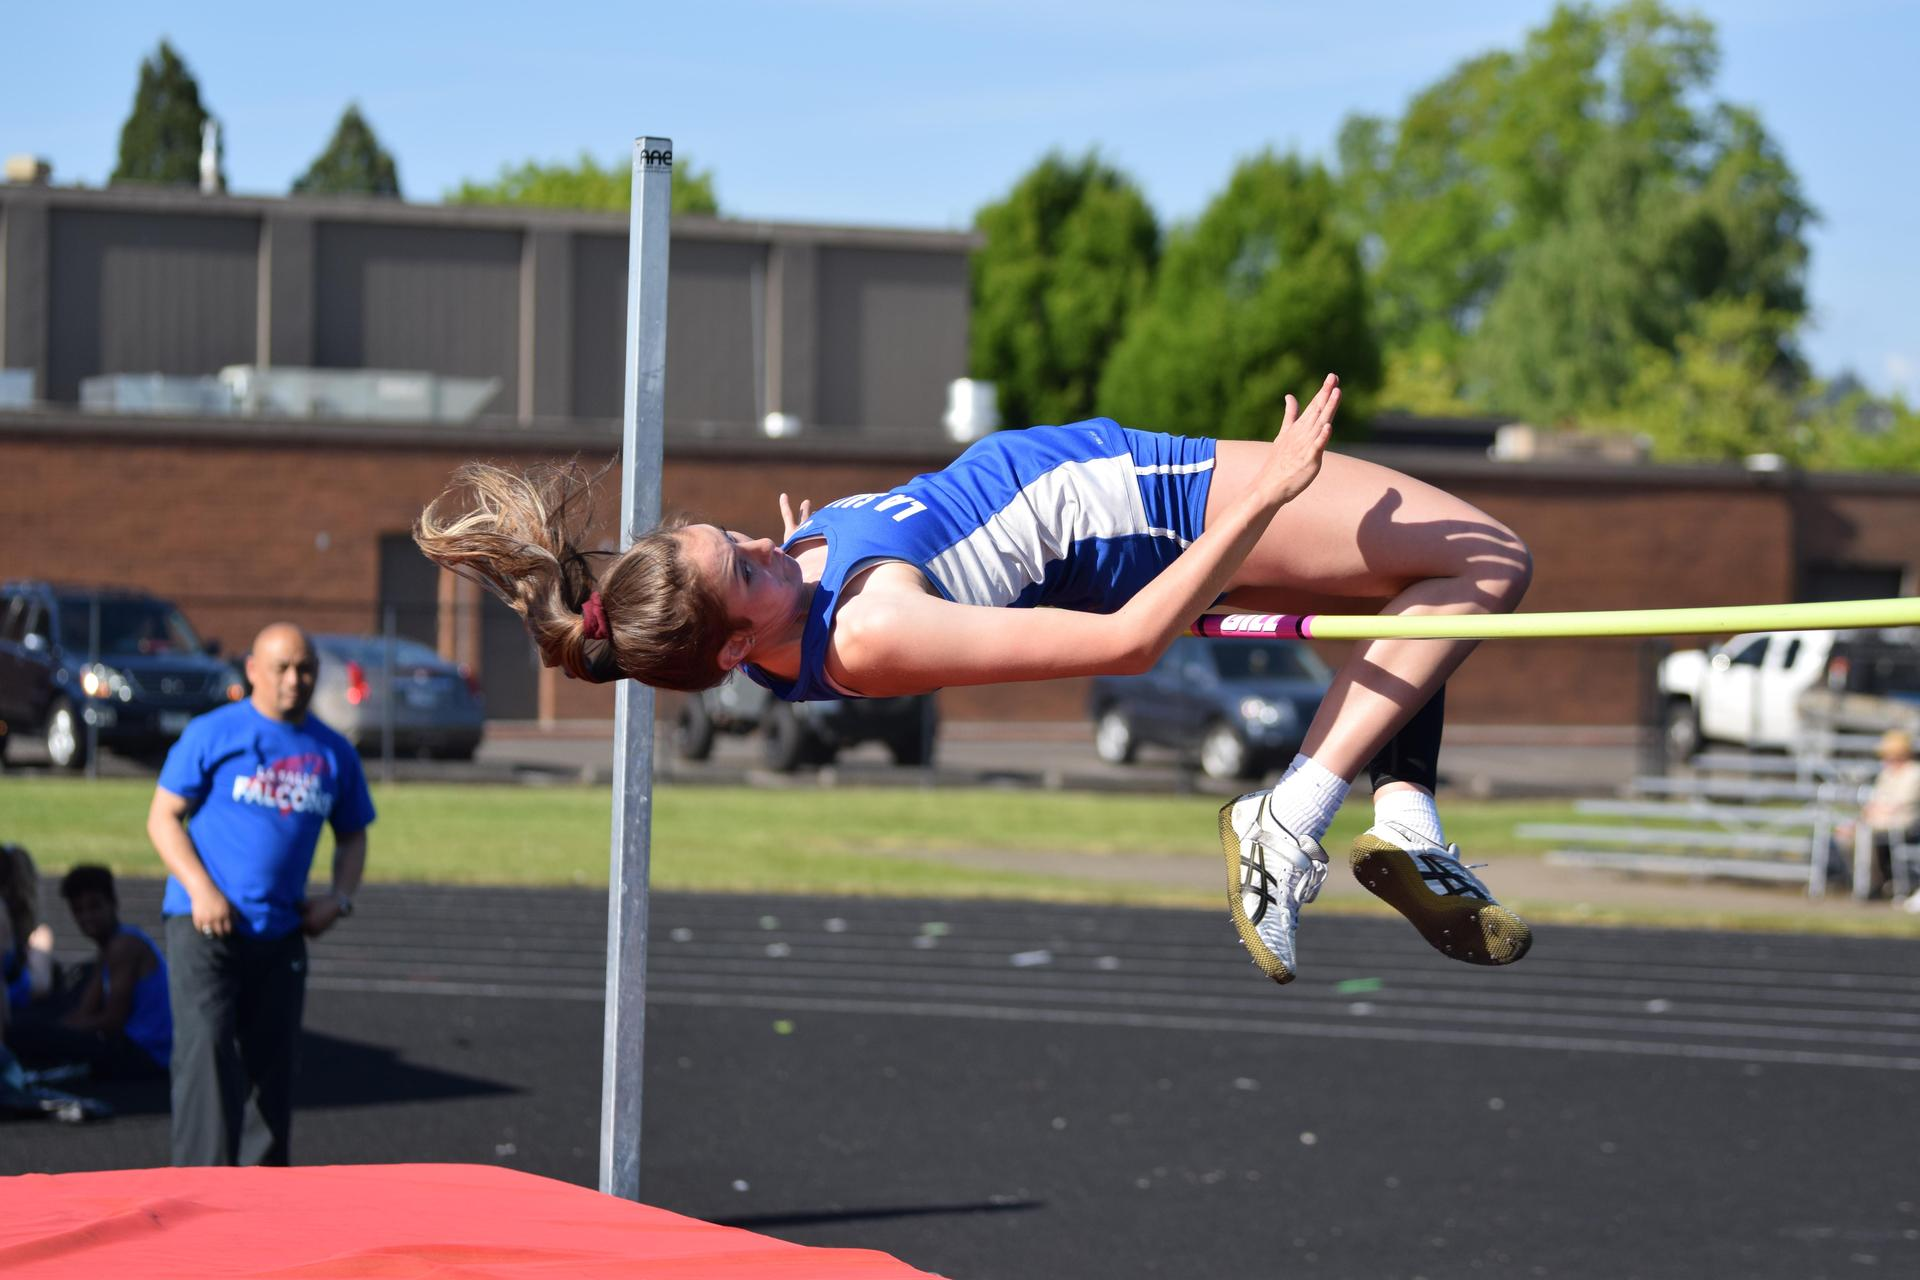 track high jumper attempts personal record